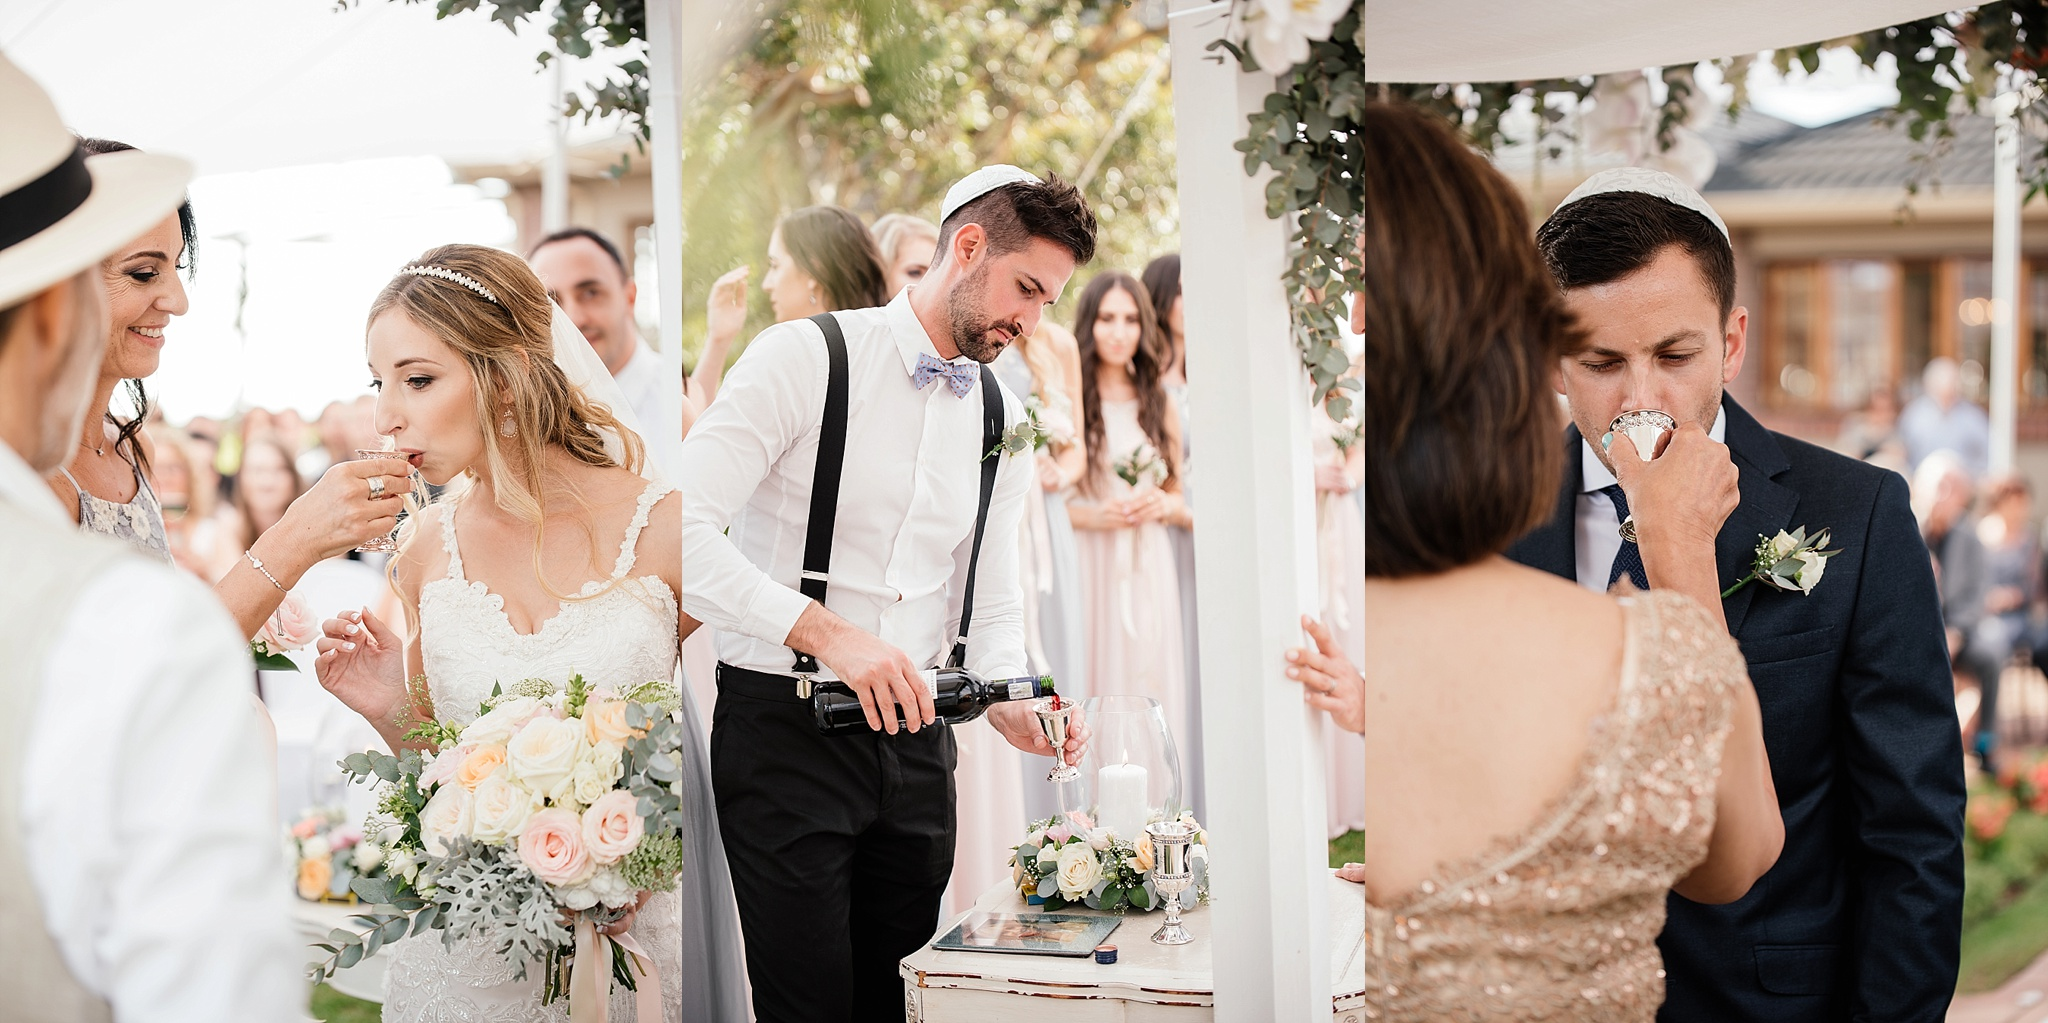 Cape Town Wedding Photographer Darren Bester - SuikerBossie - Stephen and Mikaela_0028.jpg